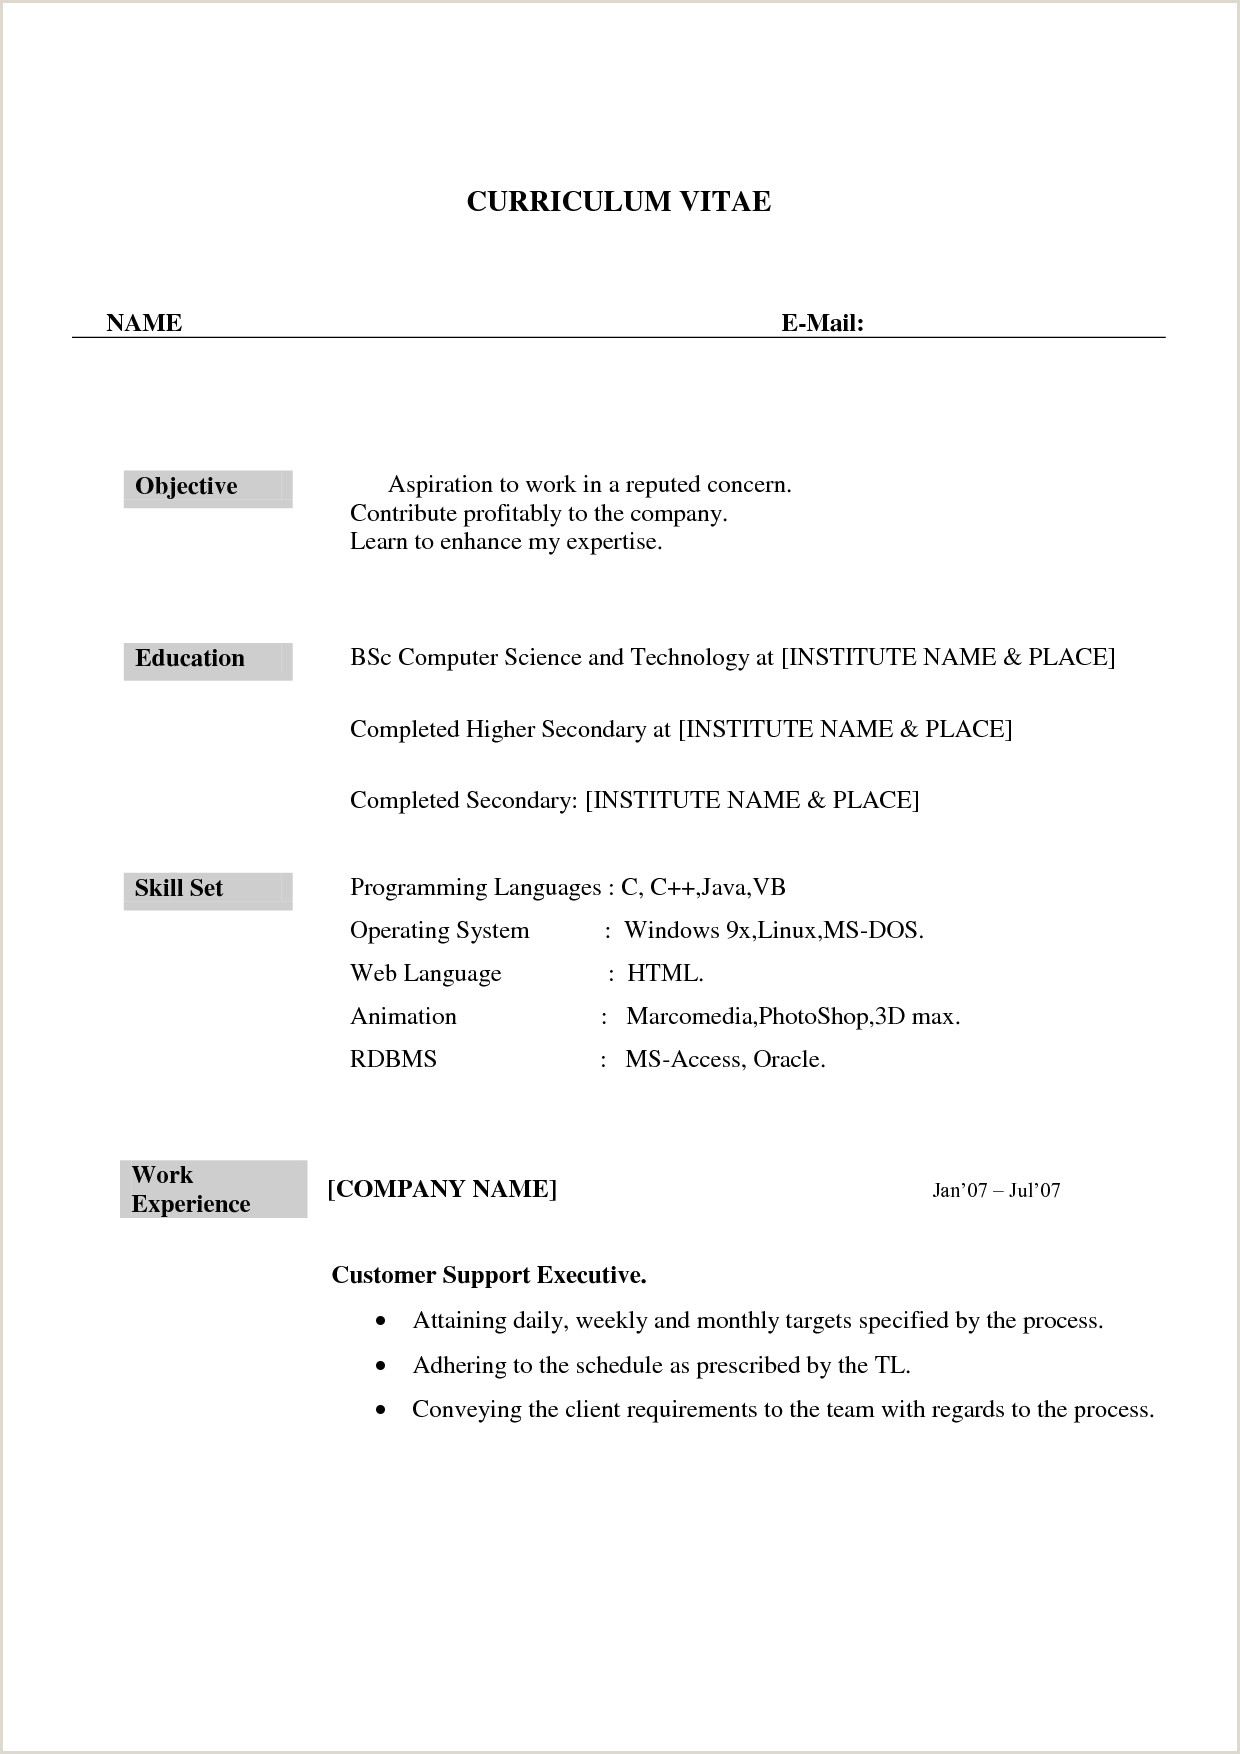 Resume format for Call Center Job Fresher Pdf Pin by Sarala Rajgopal On Job